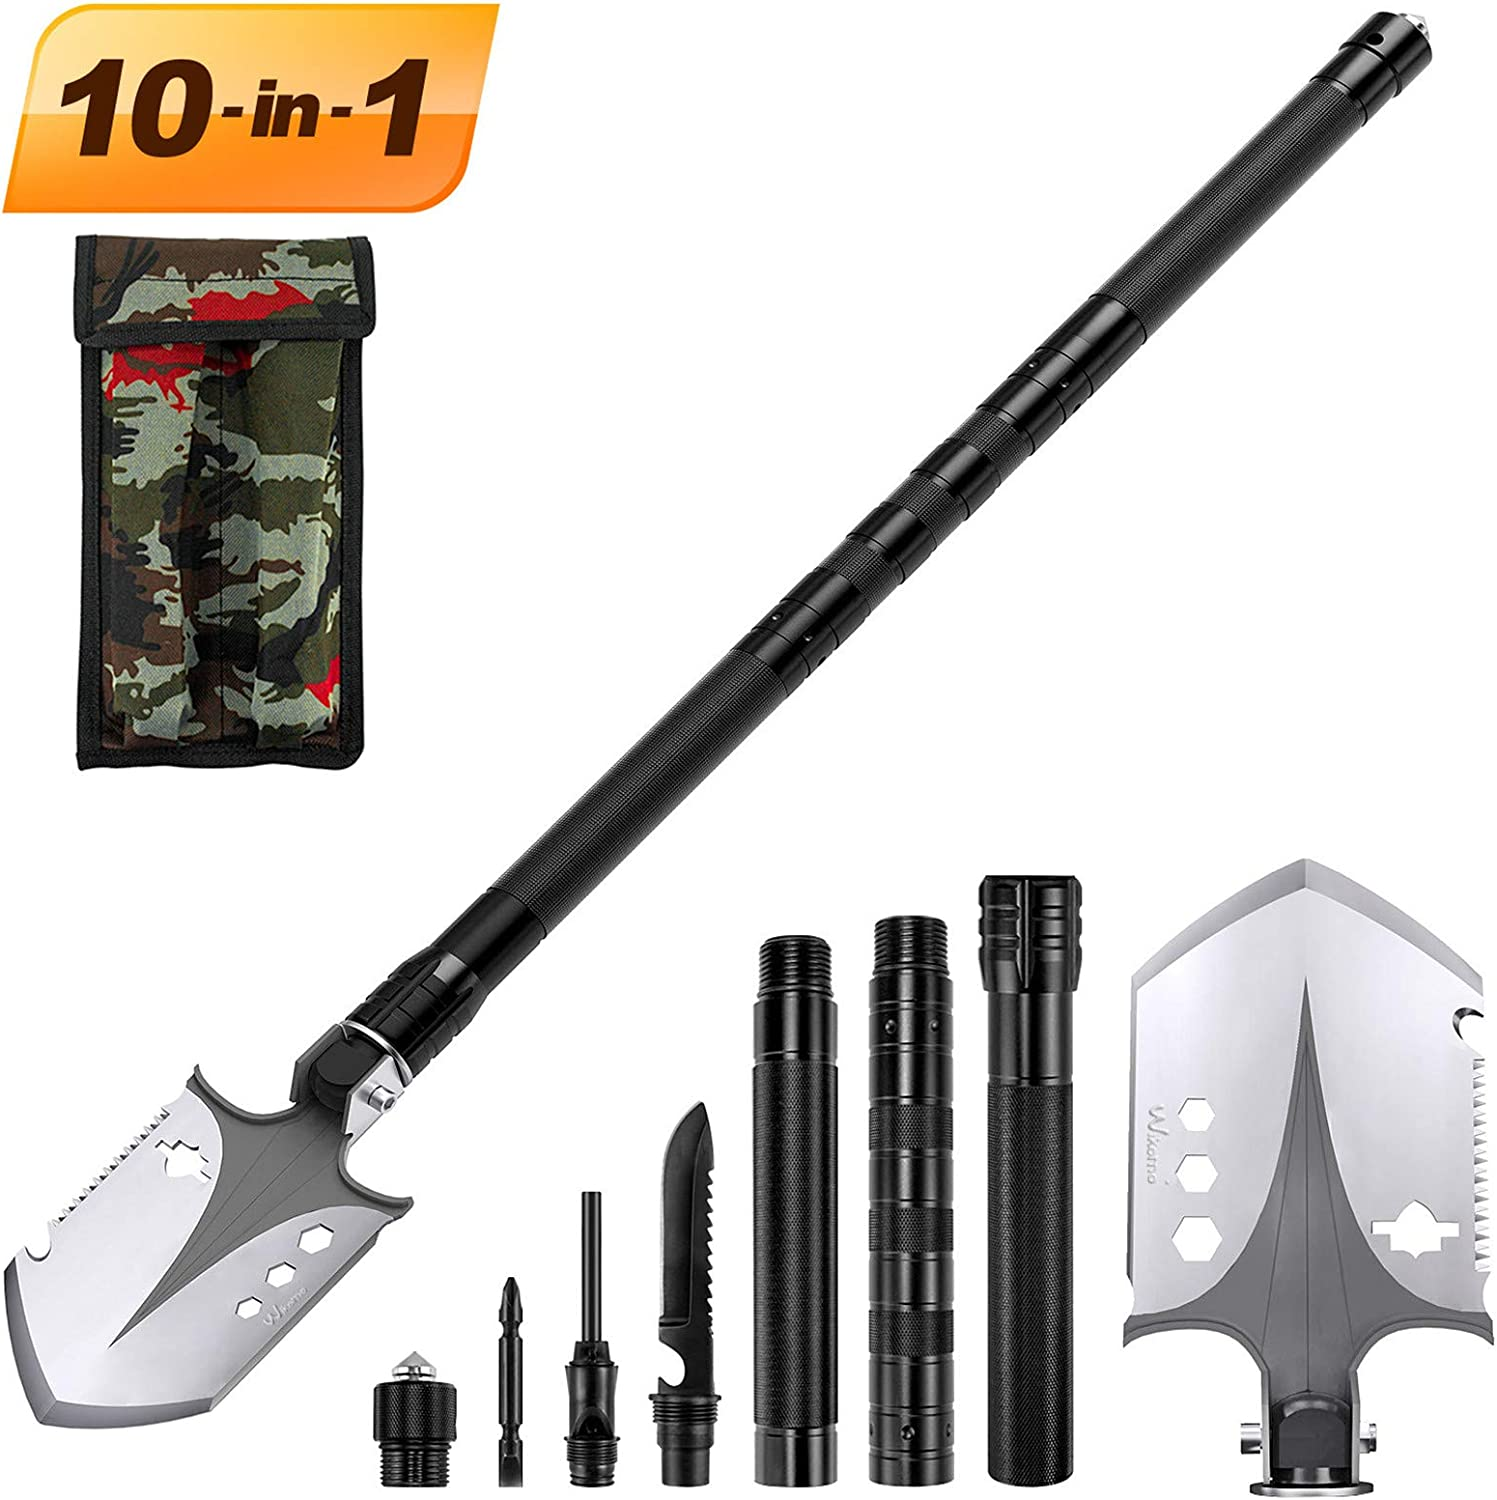 Portable Folding Shovel 10 in 1 Army Survival Gear Multifunctional Entrenching Tool for Camping, Hiking, Backpacking, Fishing, Trekking, Gardening